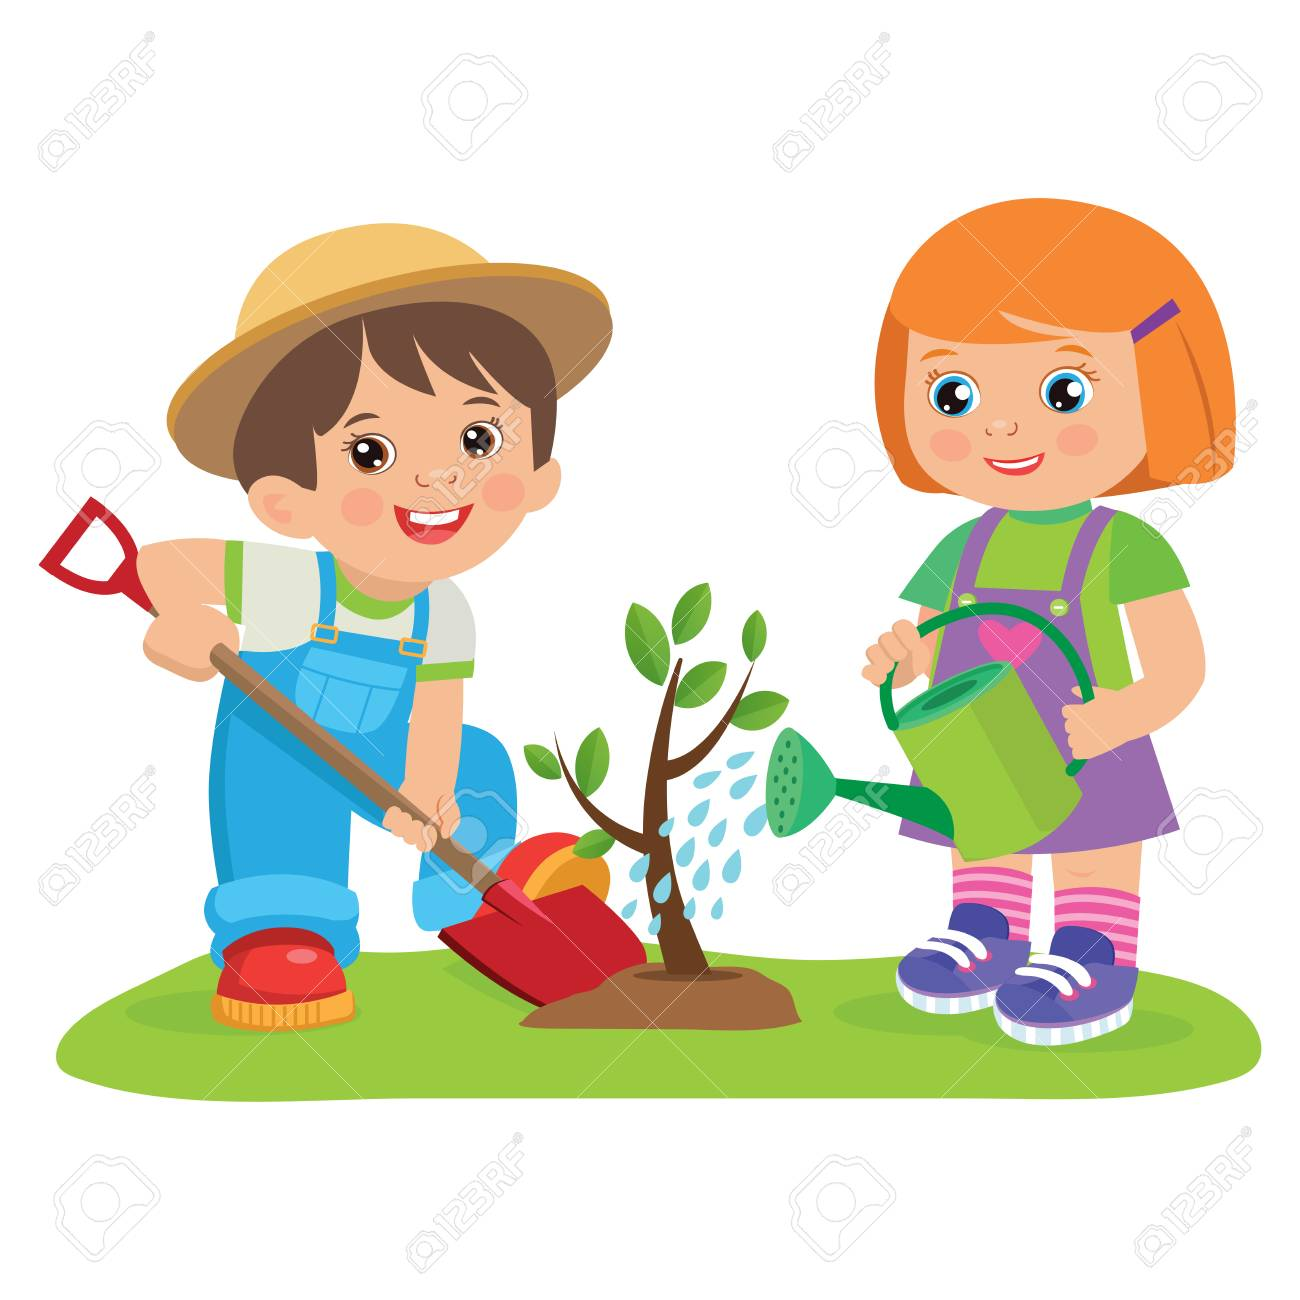 Cute Cartoon Girl And Boy Working In The Garden Vector Illustration Royalty Free Cliparts Vectors And Stock Illustration Image 100068832